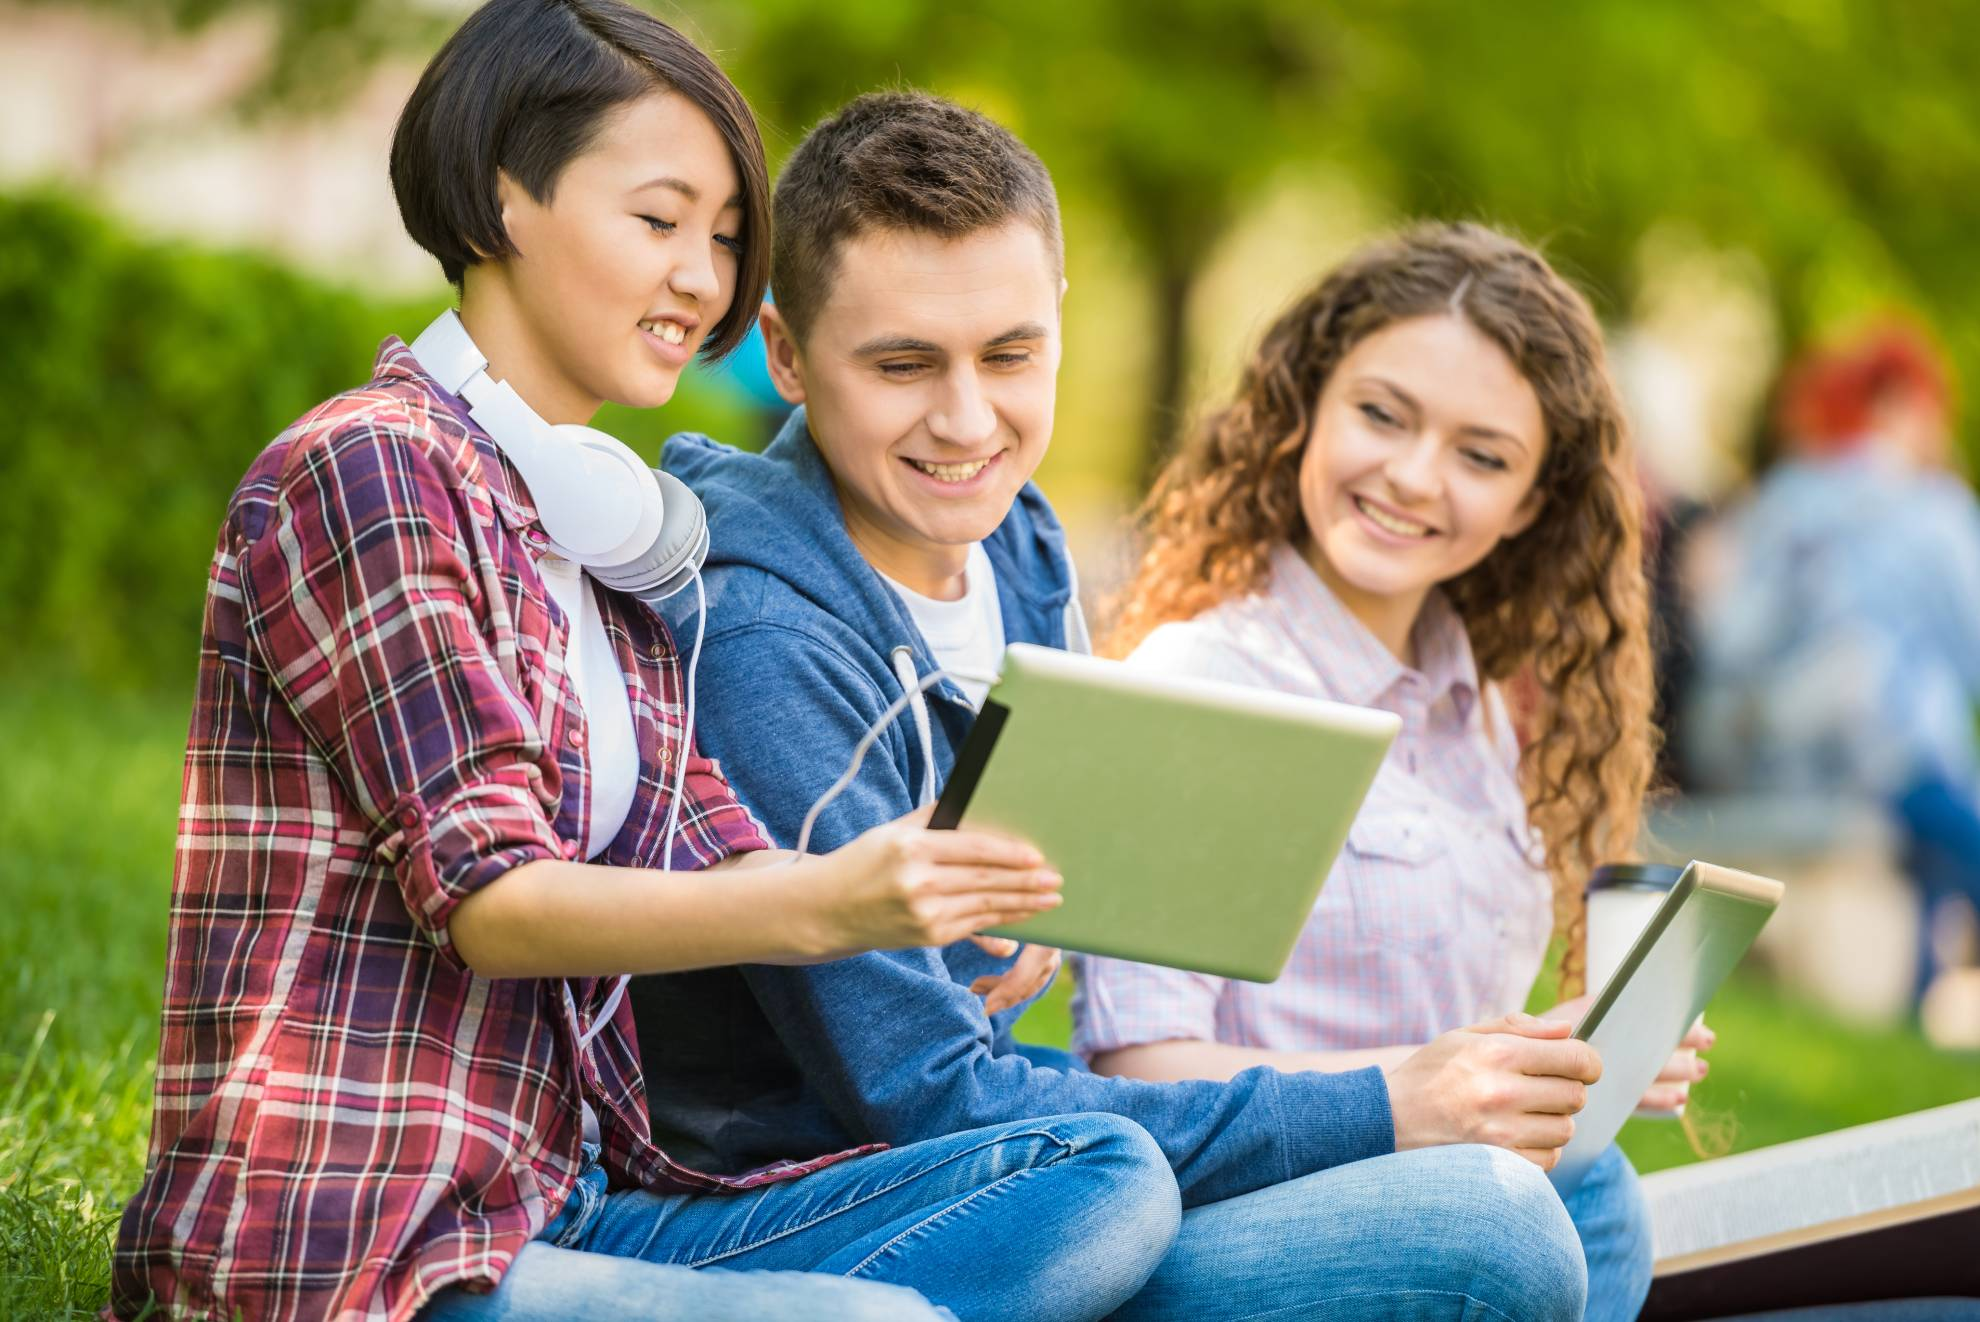 students-outdoors-C6H8C29 (1)